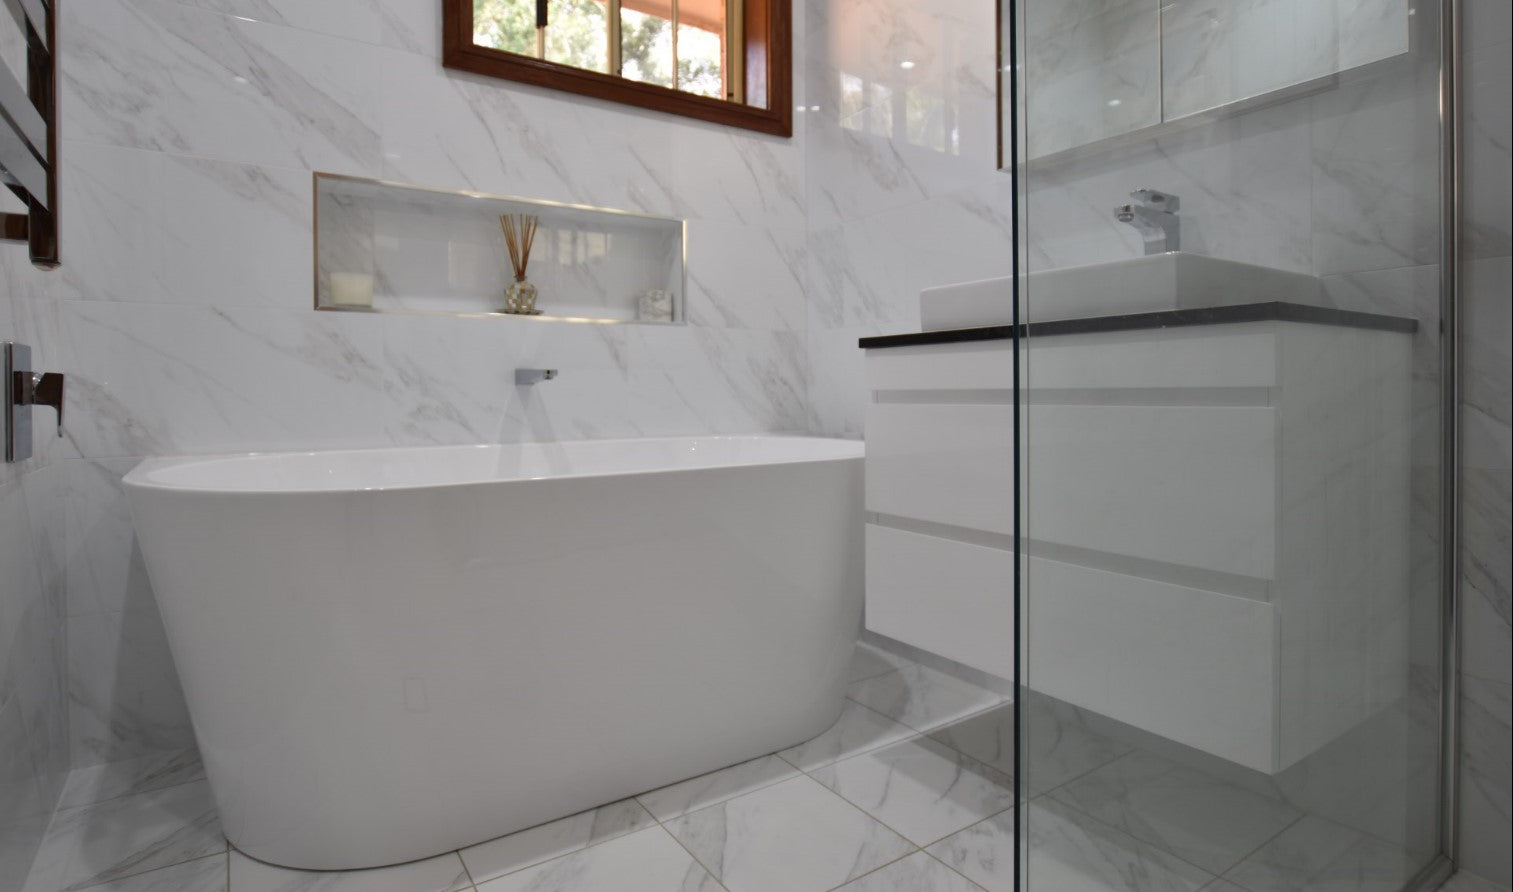 Deanne's bathroom features a back to wall bath tub, much easier to clean as there are less gaps